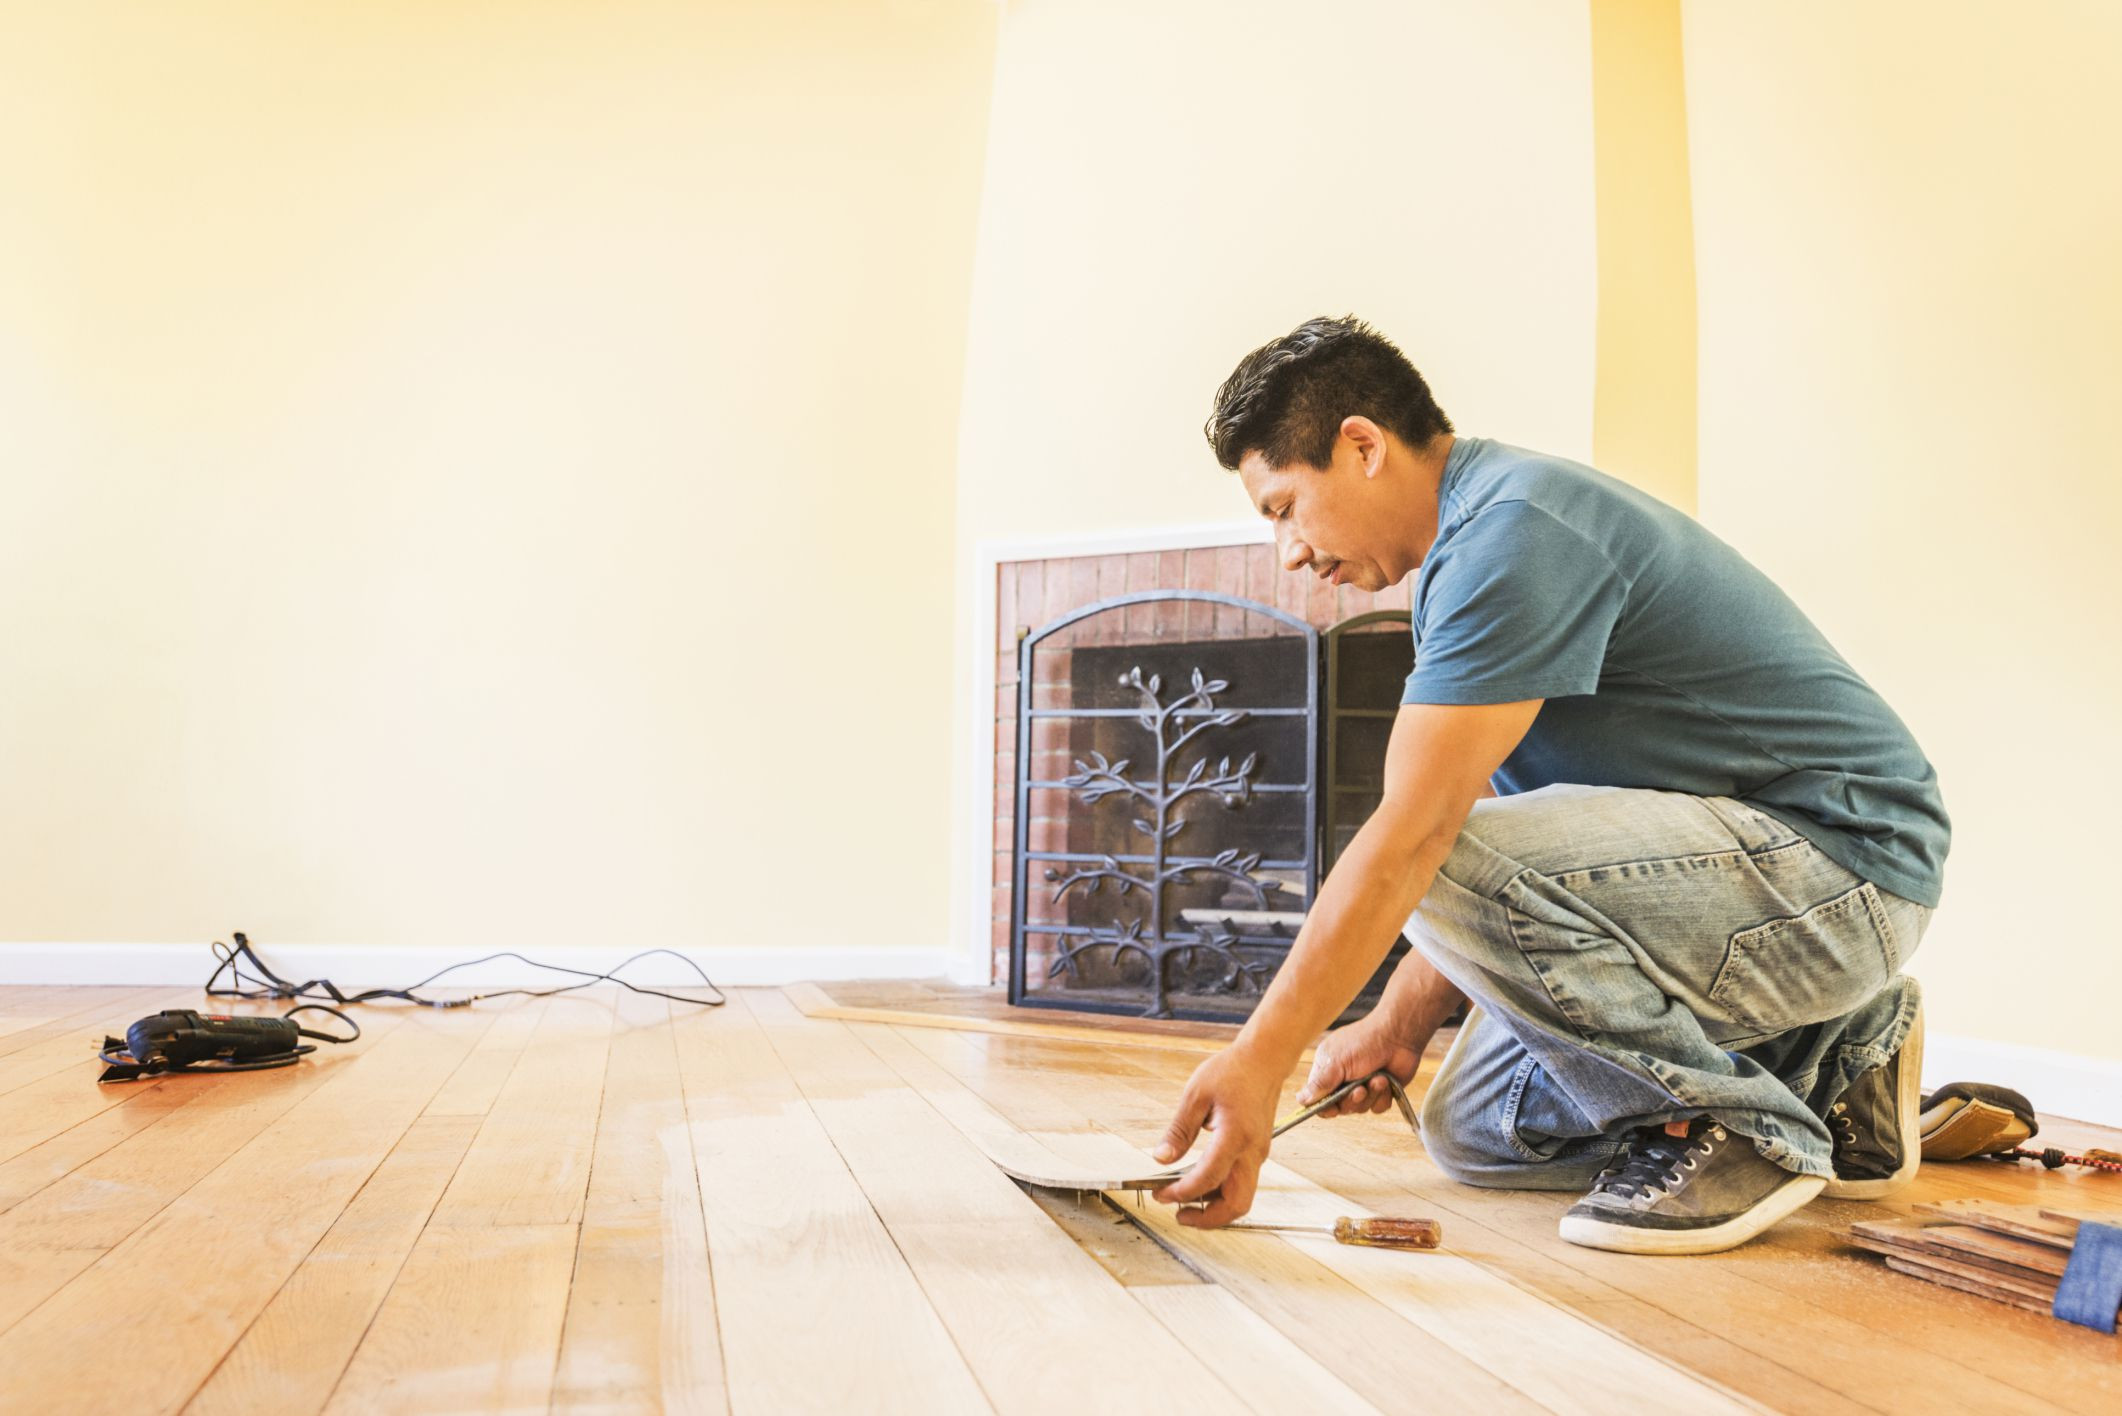 how does it cost to install hardwood floors of solid hardwood flooring costs for professional vs diy with installwoodflooring 592016327 56684d6f3df78ce1610a598a